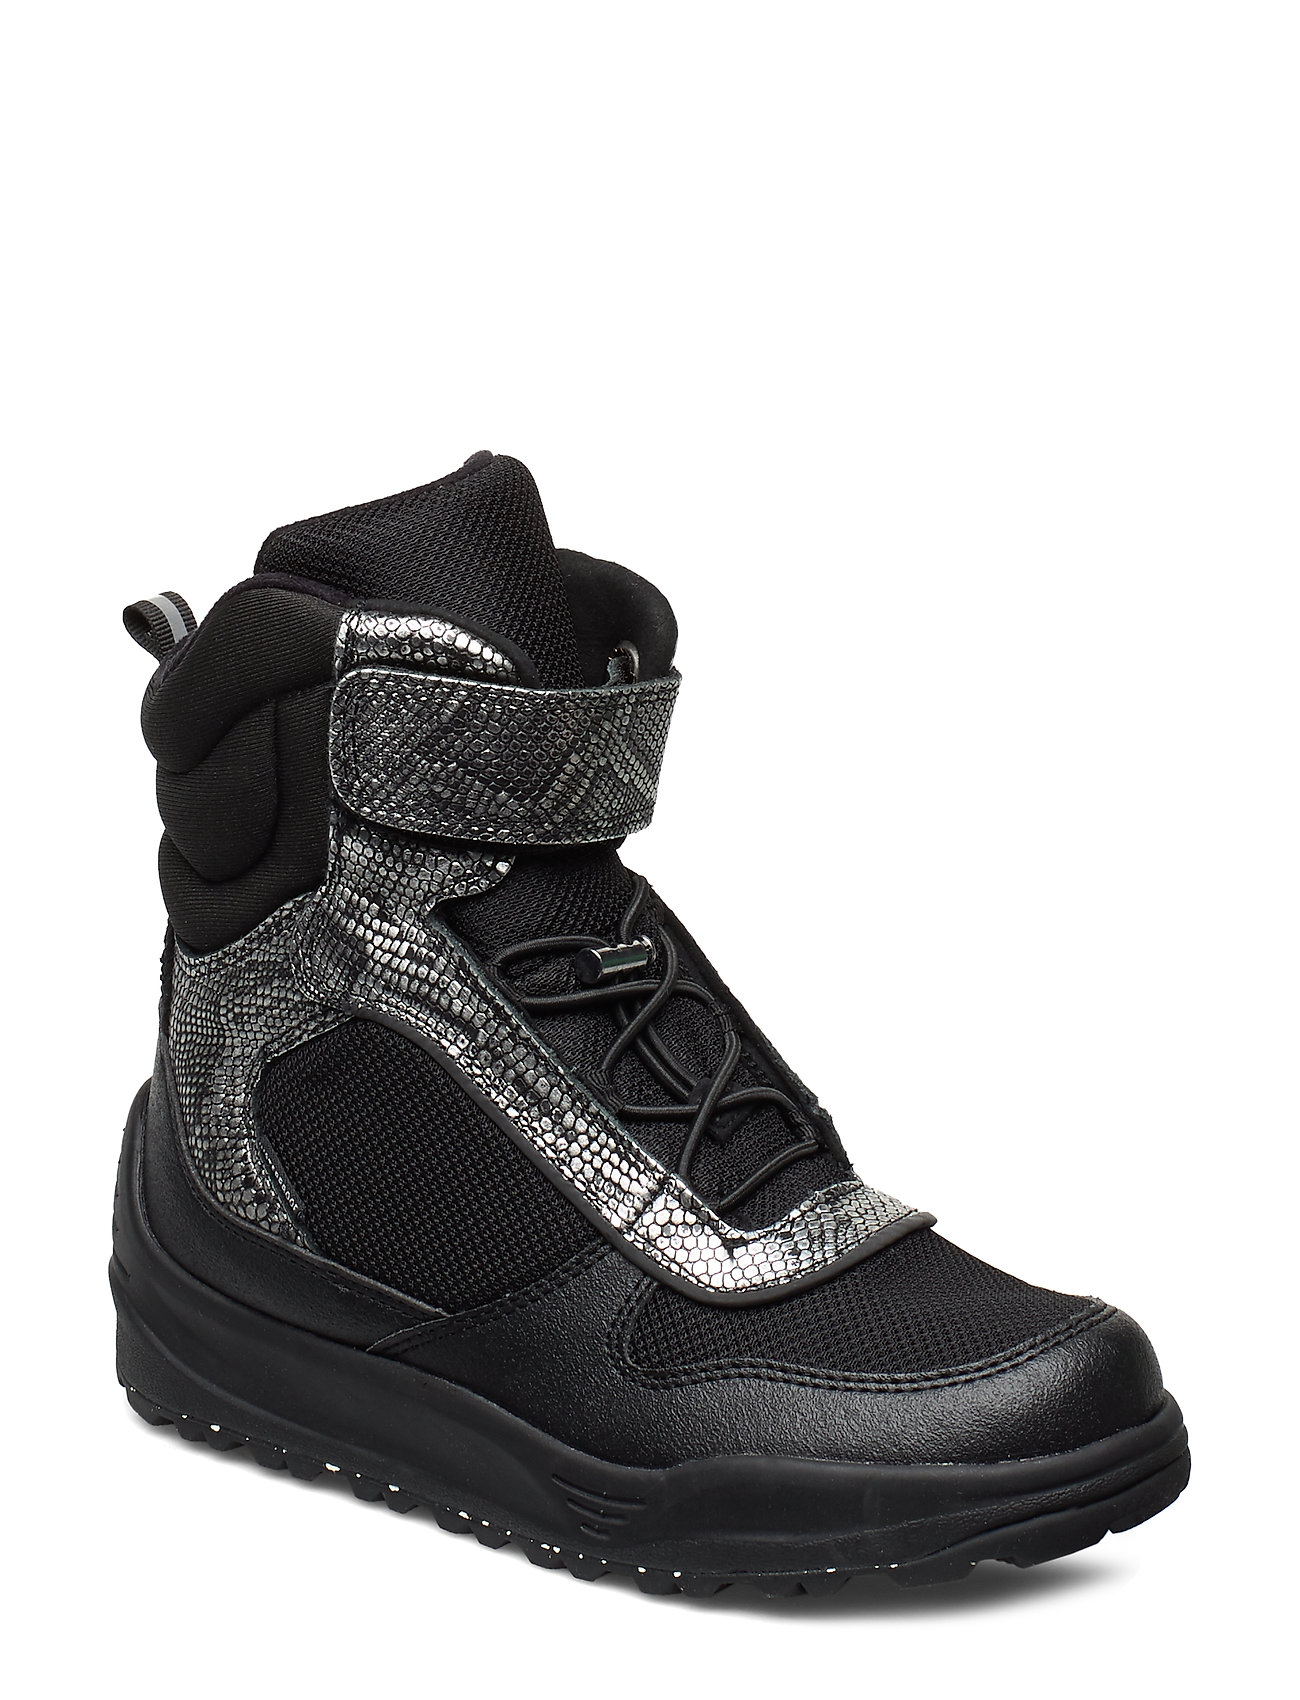 Image of Malik Midcut Boot Teen Shoes Boots Ankle Boots Ankle Boots Flat Heel Sort Woden (3267705787)